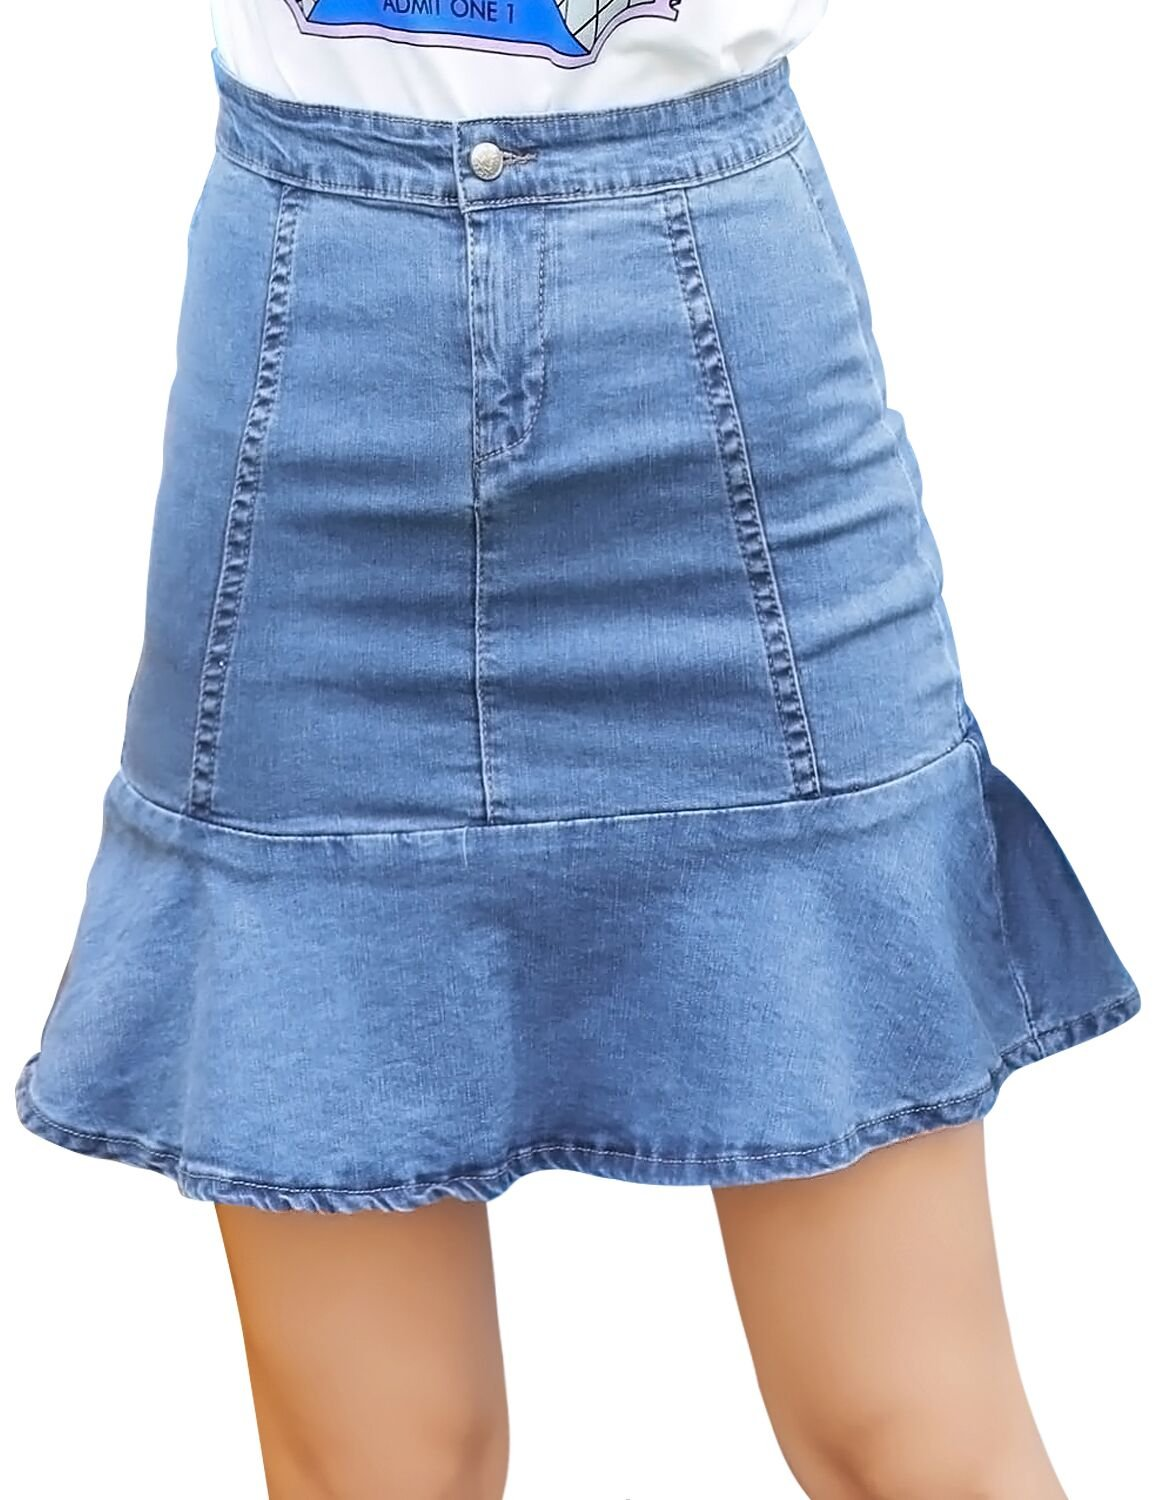 MG & Fashion Women Casual Modern Button Front Flared Stretchy Denim Short Skirt (L)